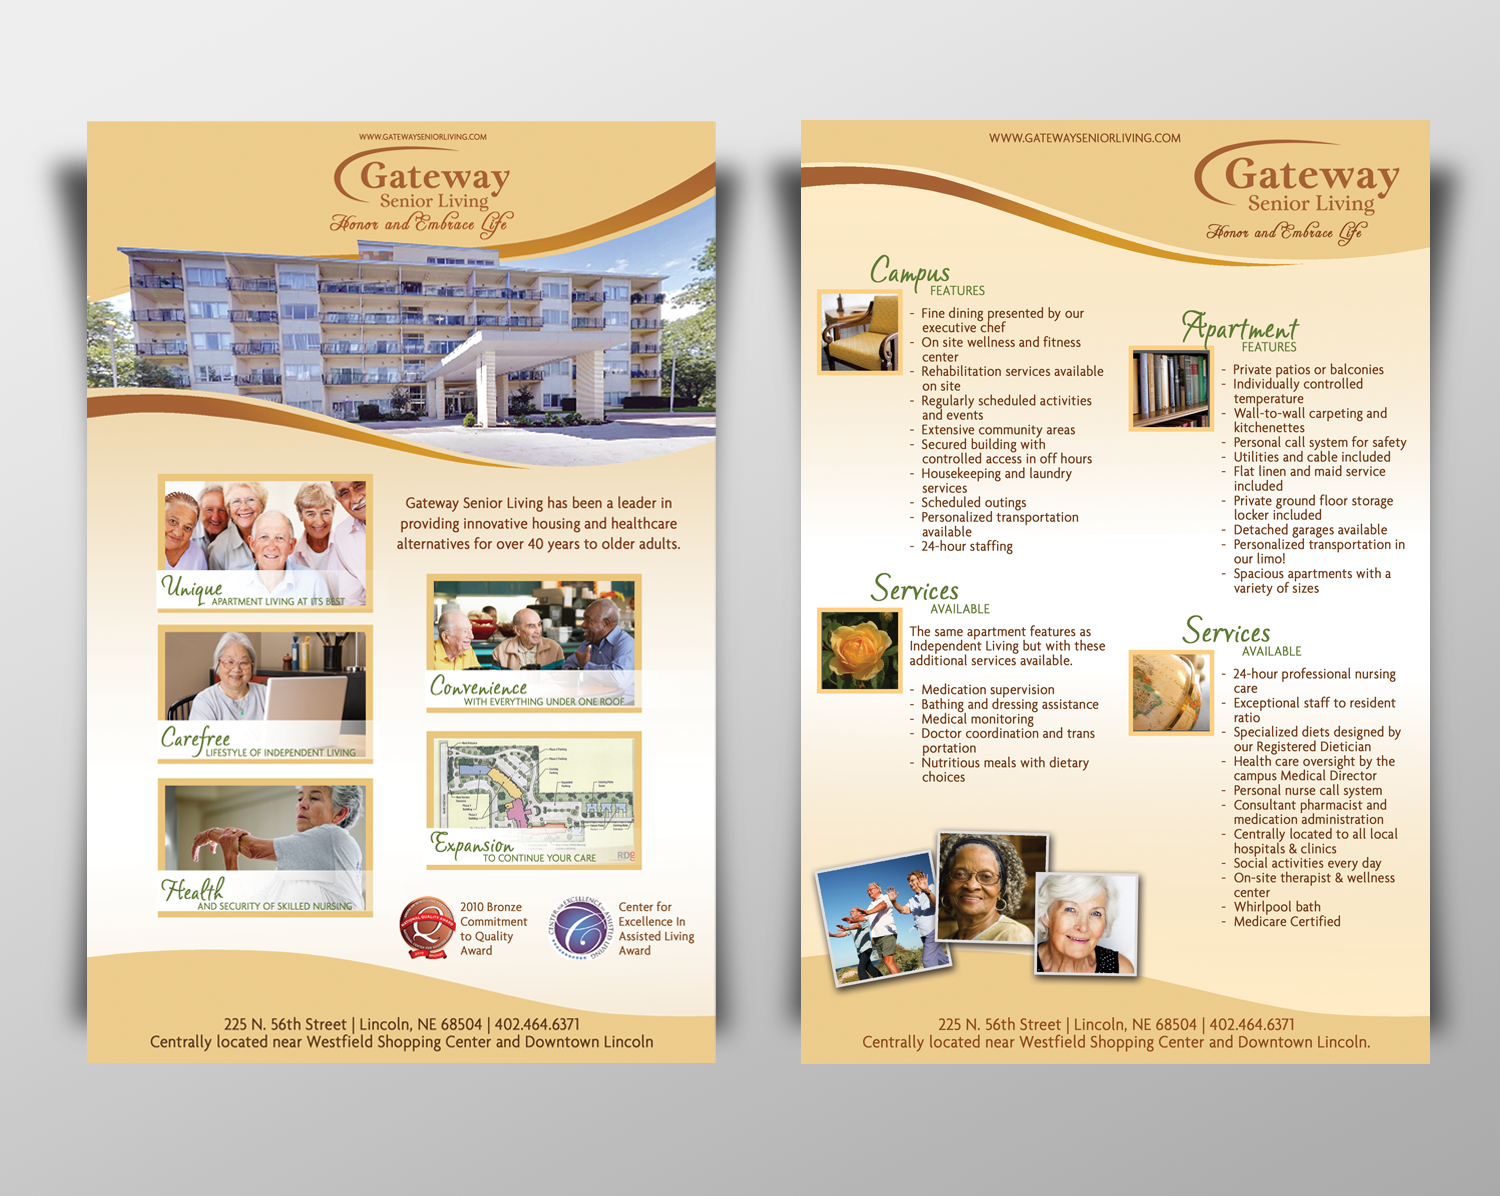 Help Gateway Senior Living with a new postcard or flyer